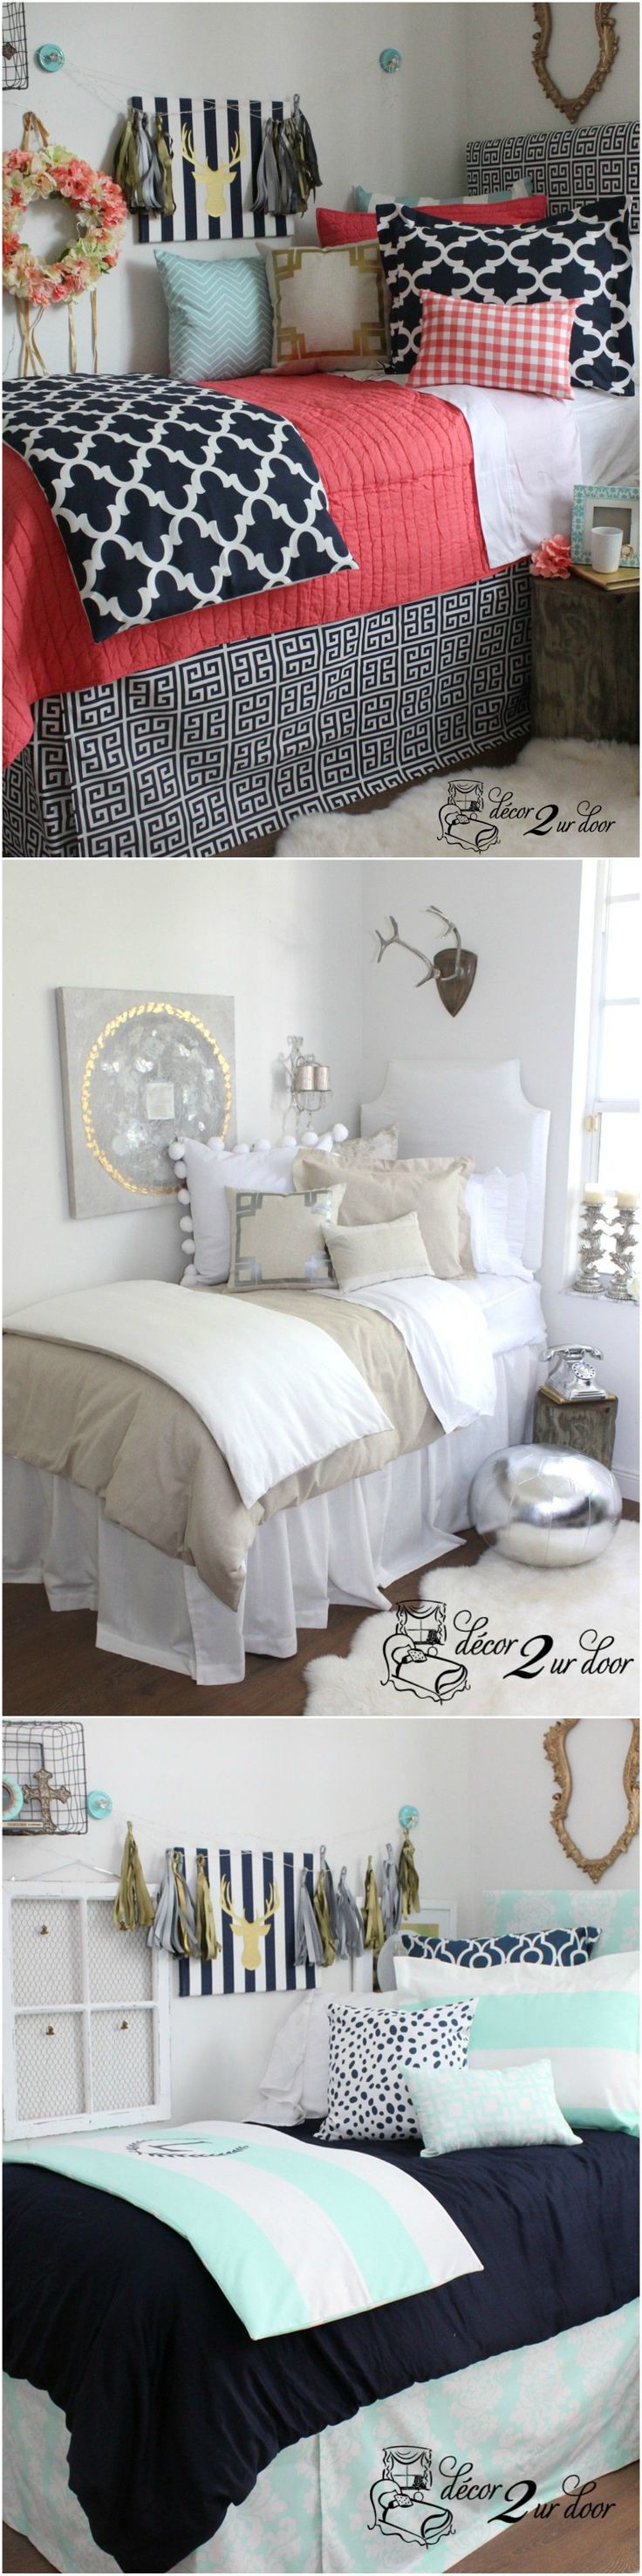 Dorm Room Bedding From Featuring Unique And Stylish Designs. Design Your  Own Dorm Room Bedding Or Select From One Of Our Designer Dorm Bedding Sets. Part 57